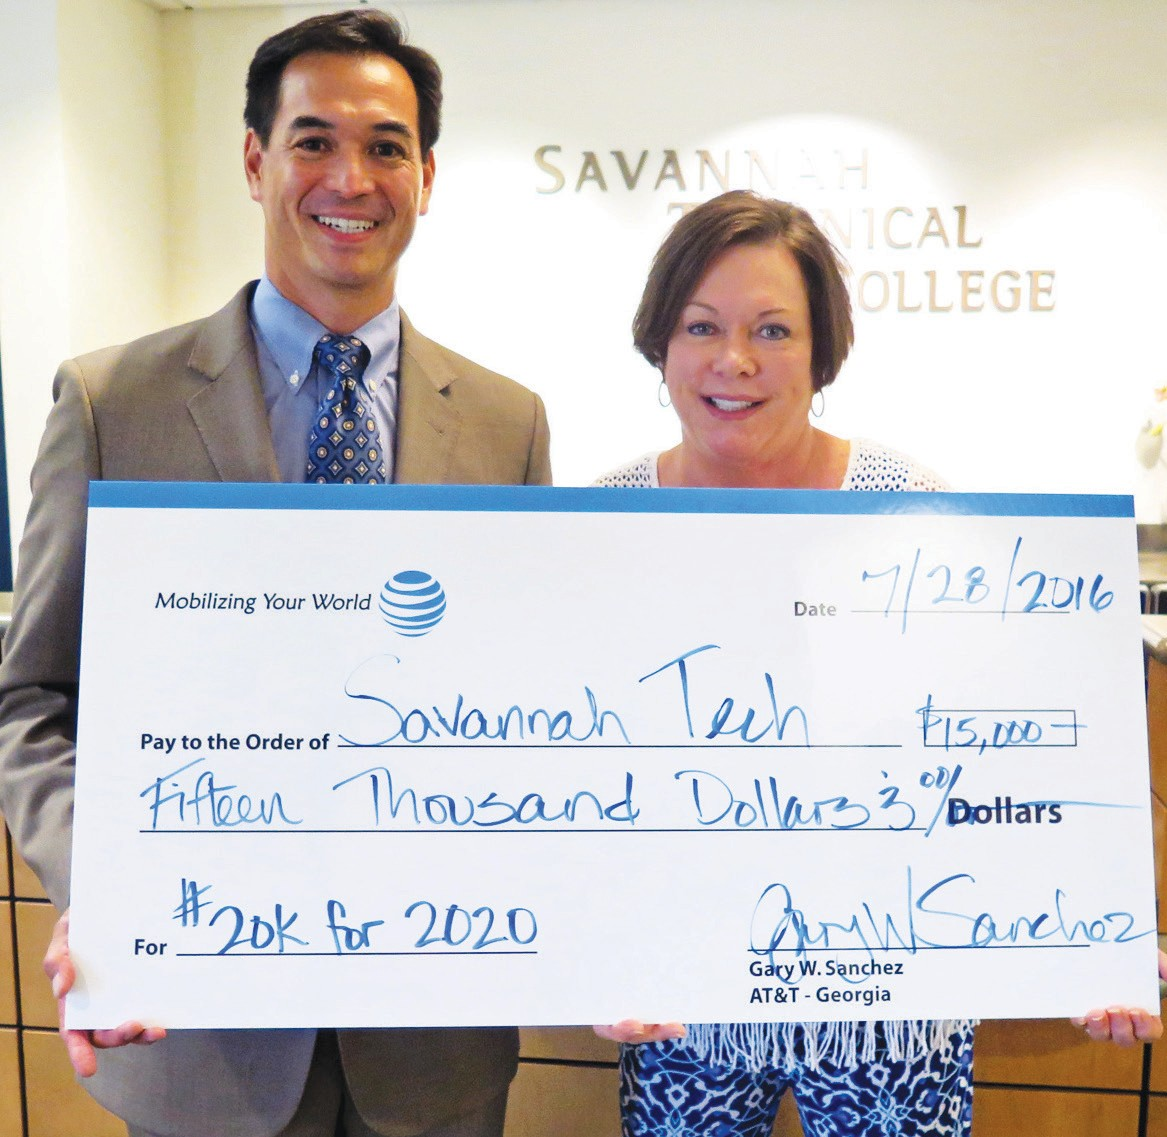 AT&T's Southeast Georgia Regional Director External Affairs Gary Sanchez presented a check for $15,000 to STC President Dr. Kathy Love to support workforce development in the #20kfor2020 competition.